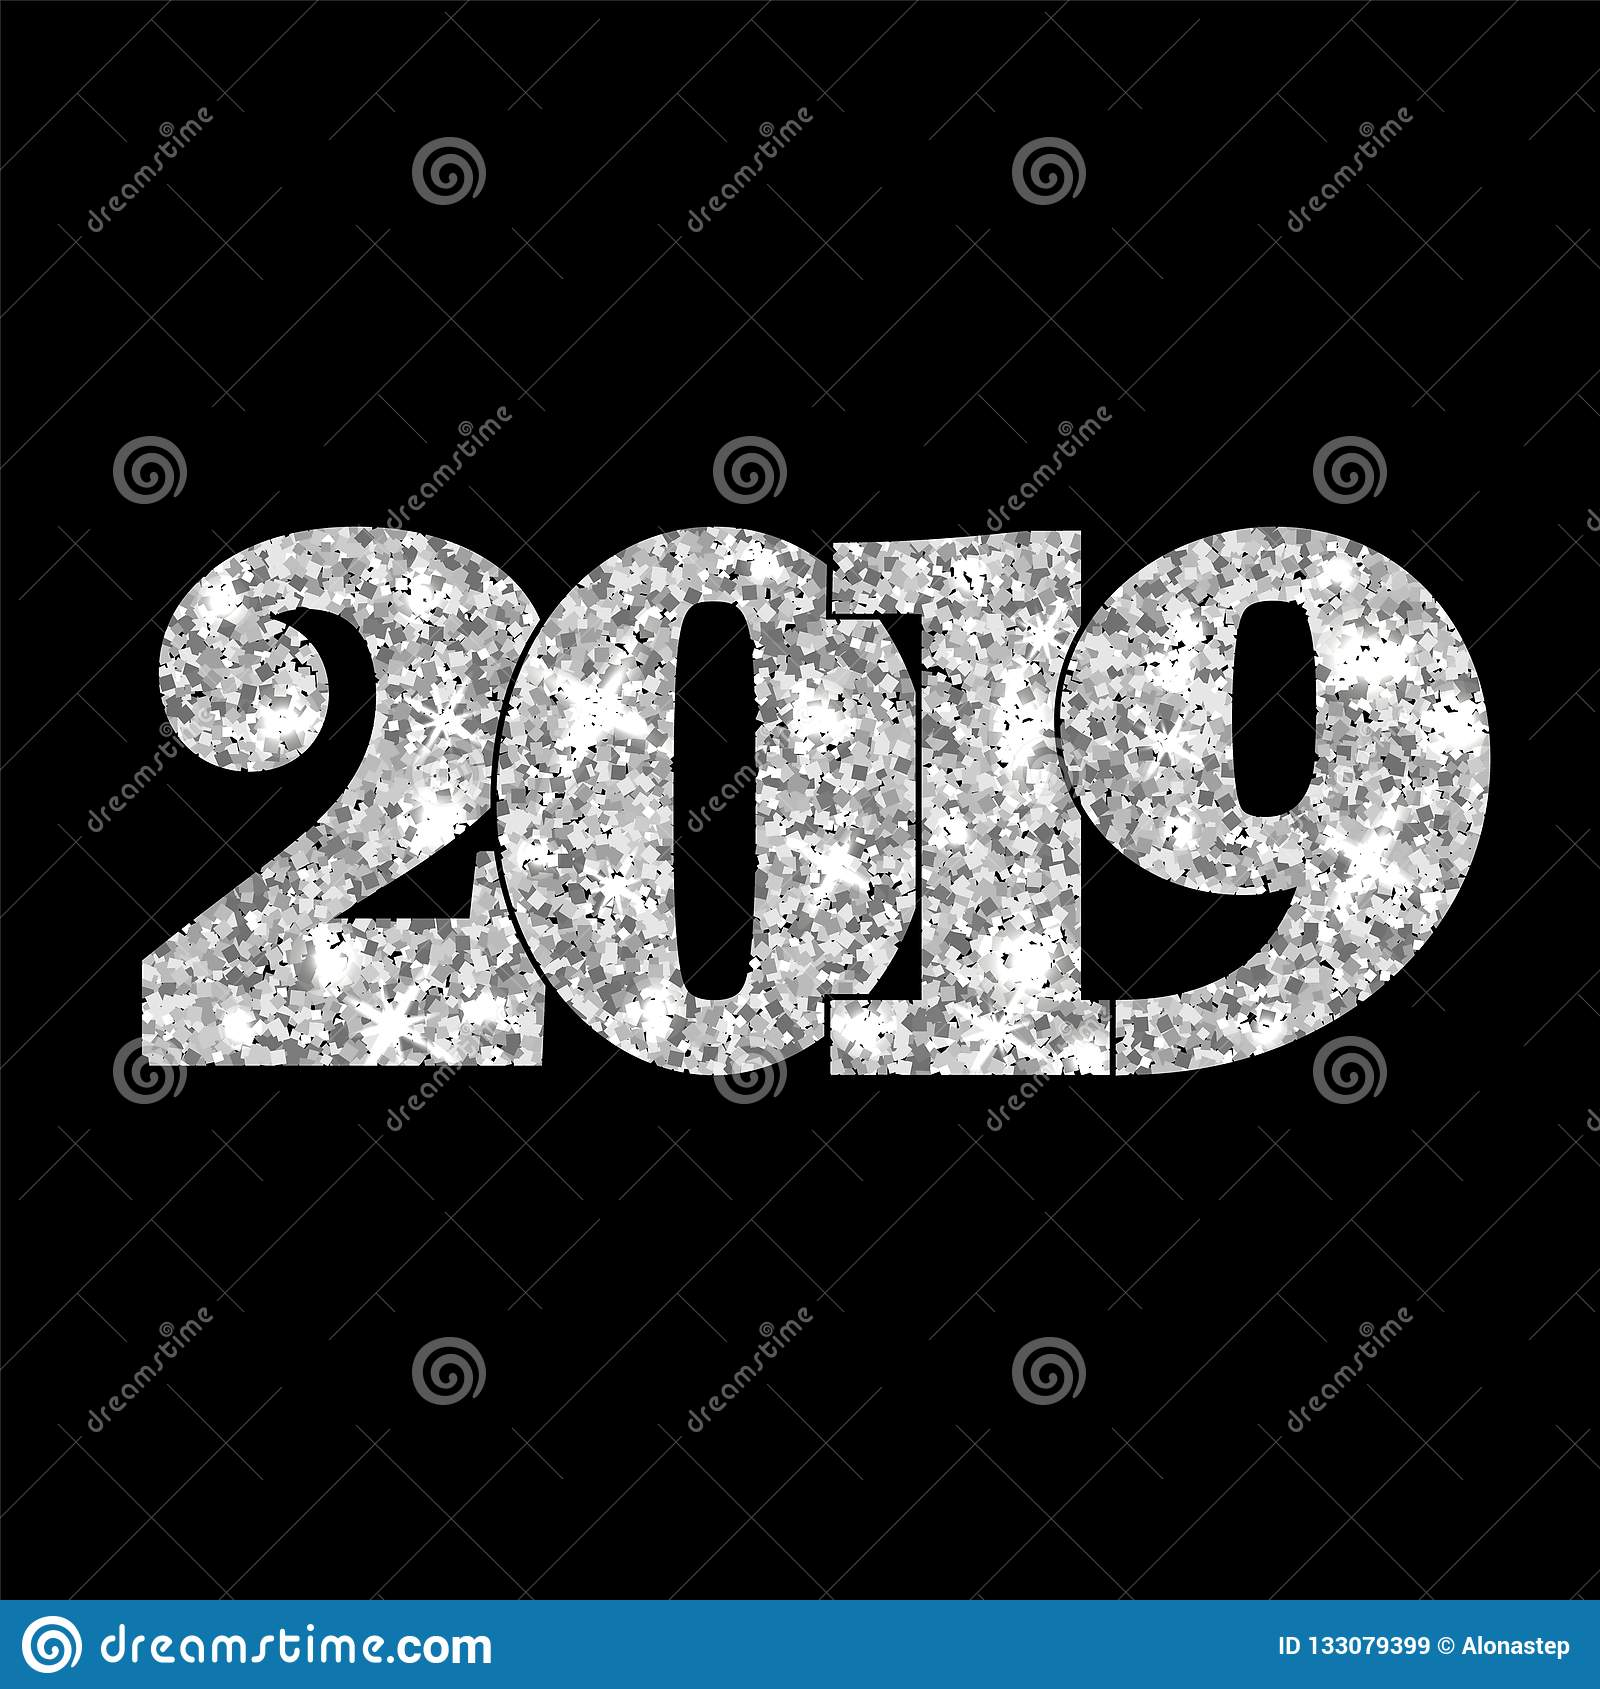 Happy New Year silver number 2019. Silvery glitter digits isolated on black background. Shiny glowing design. Light